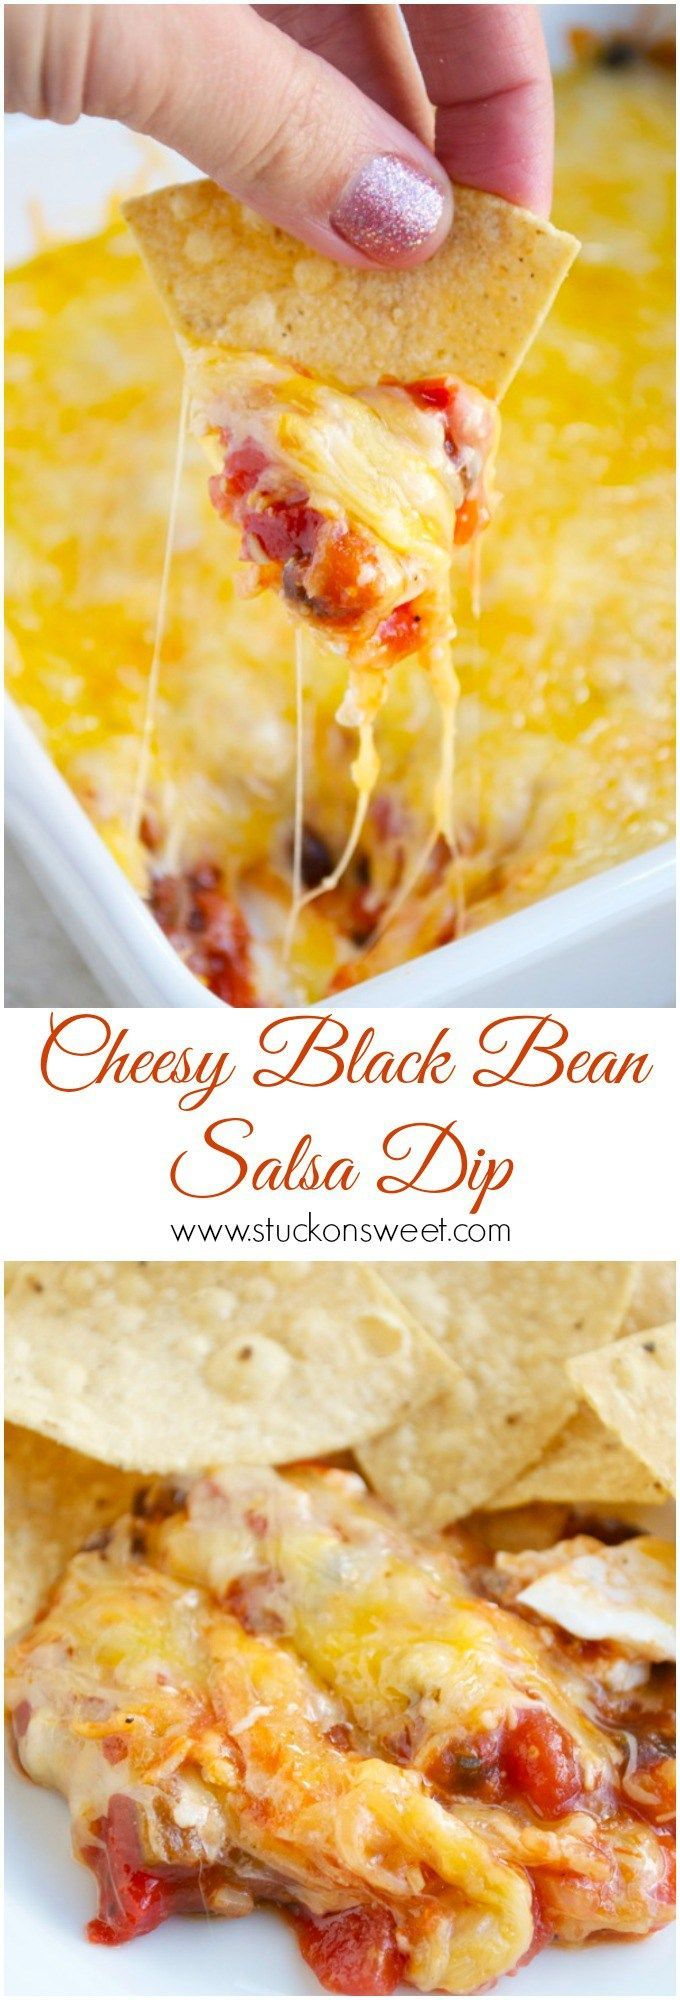 Cheesy Black Bean Salsa Dip. An easy dip to bring to any party or the perfect appetizer for game day!